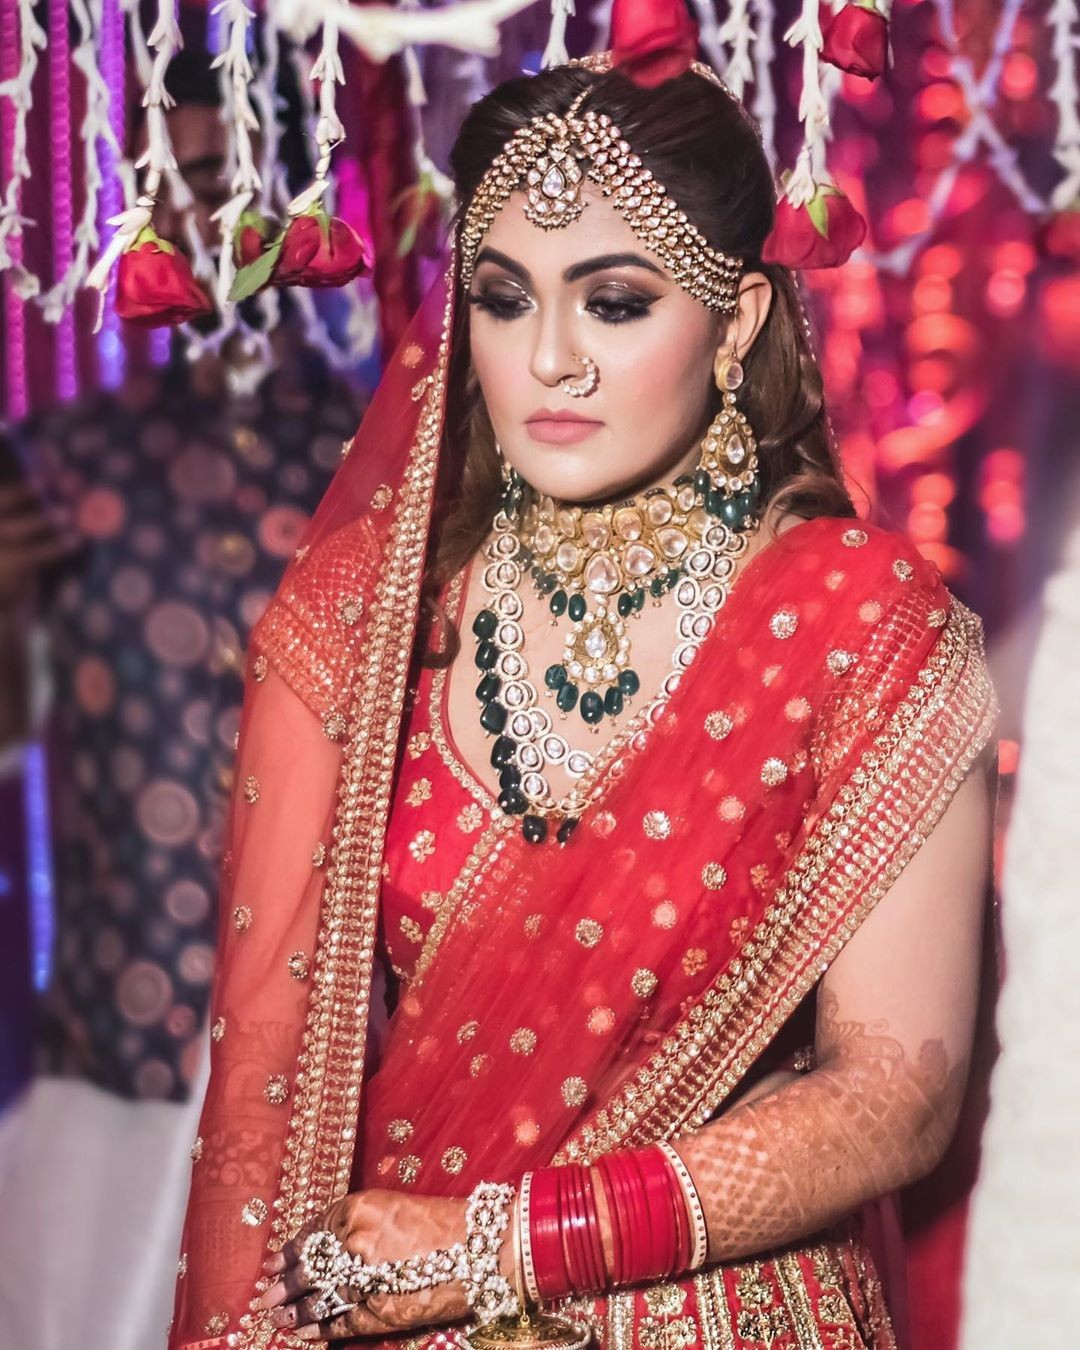 Makeup by Meghna Roda